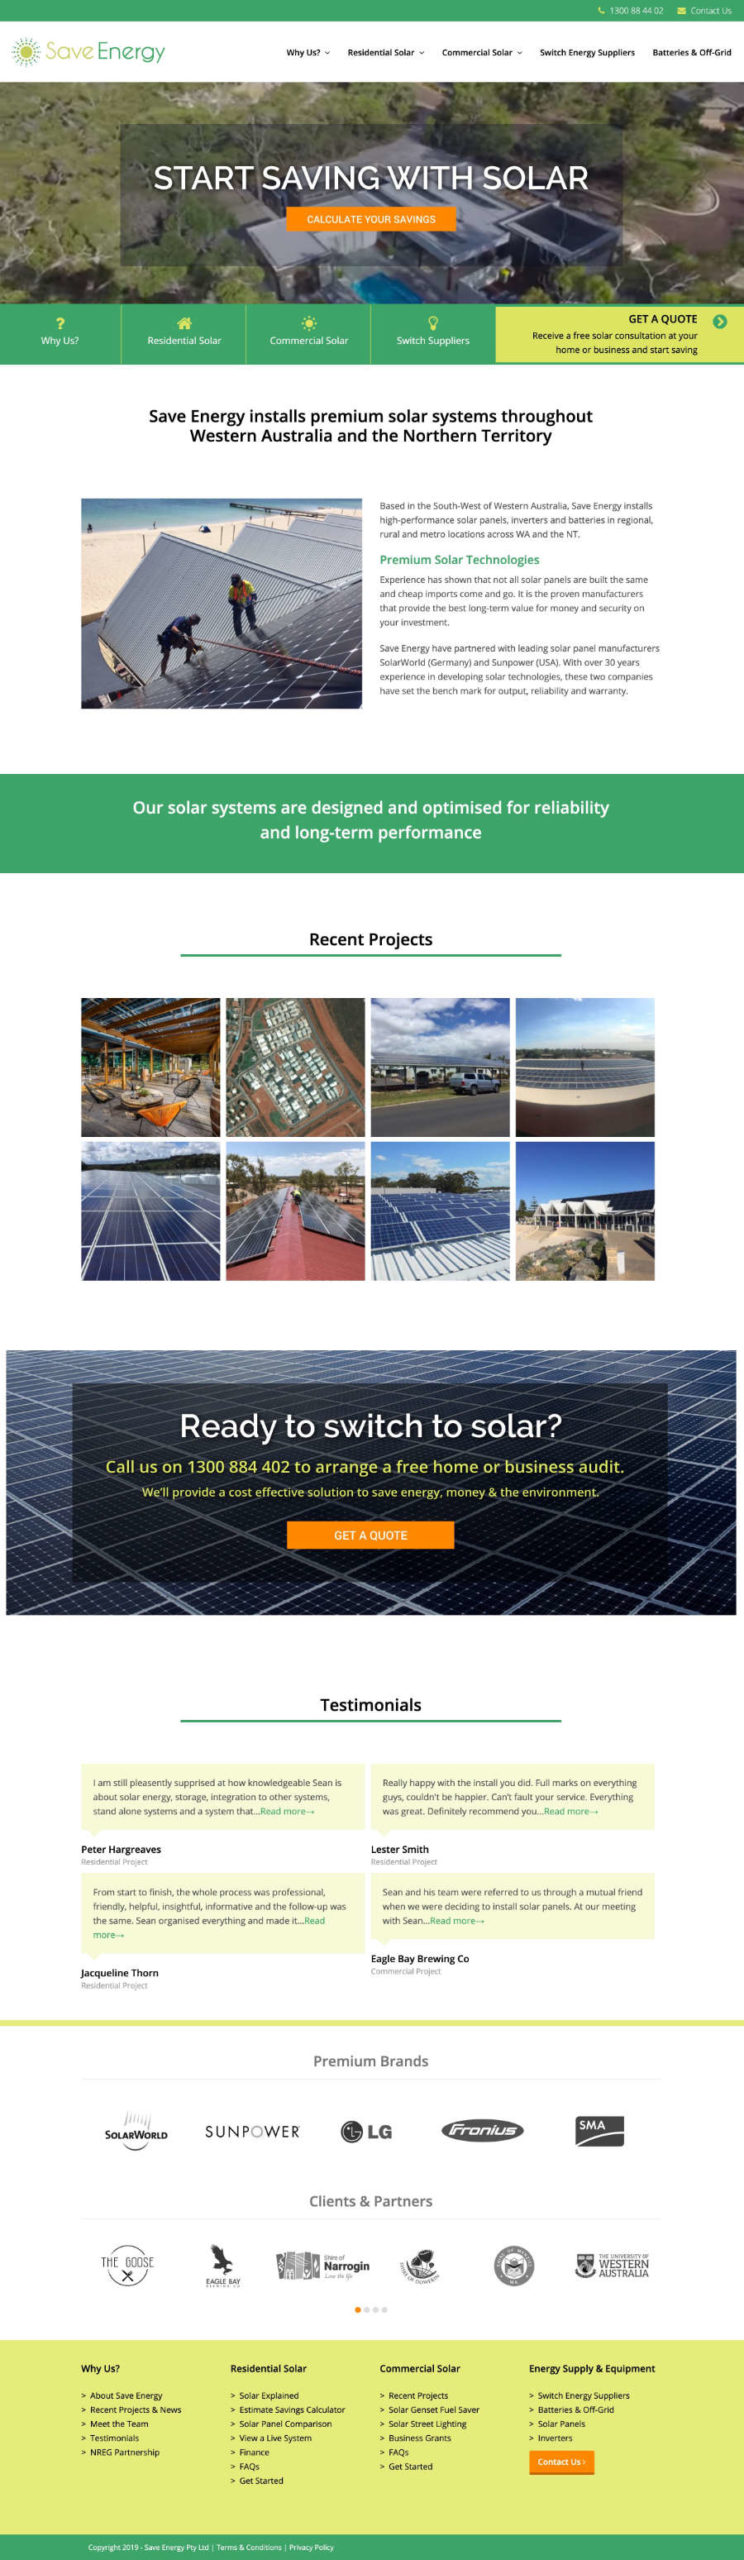 Save Energy Website design by Lucy Jordanoff